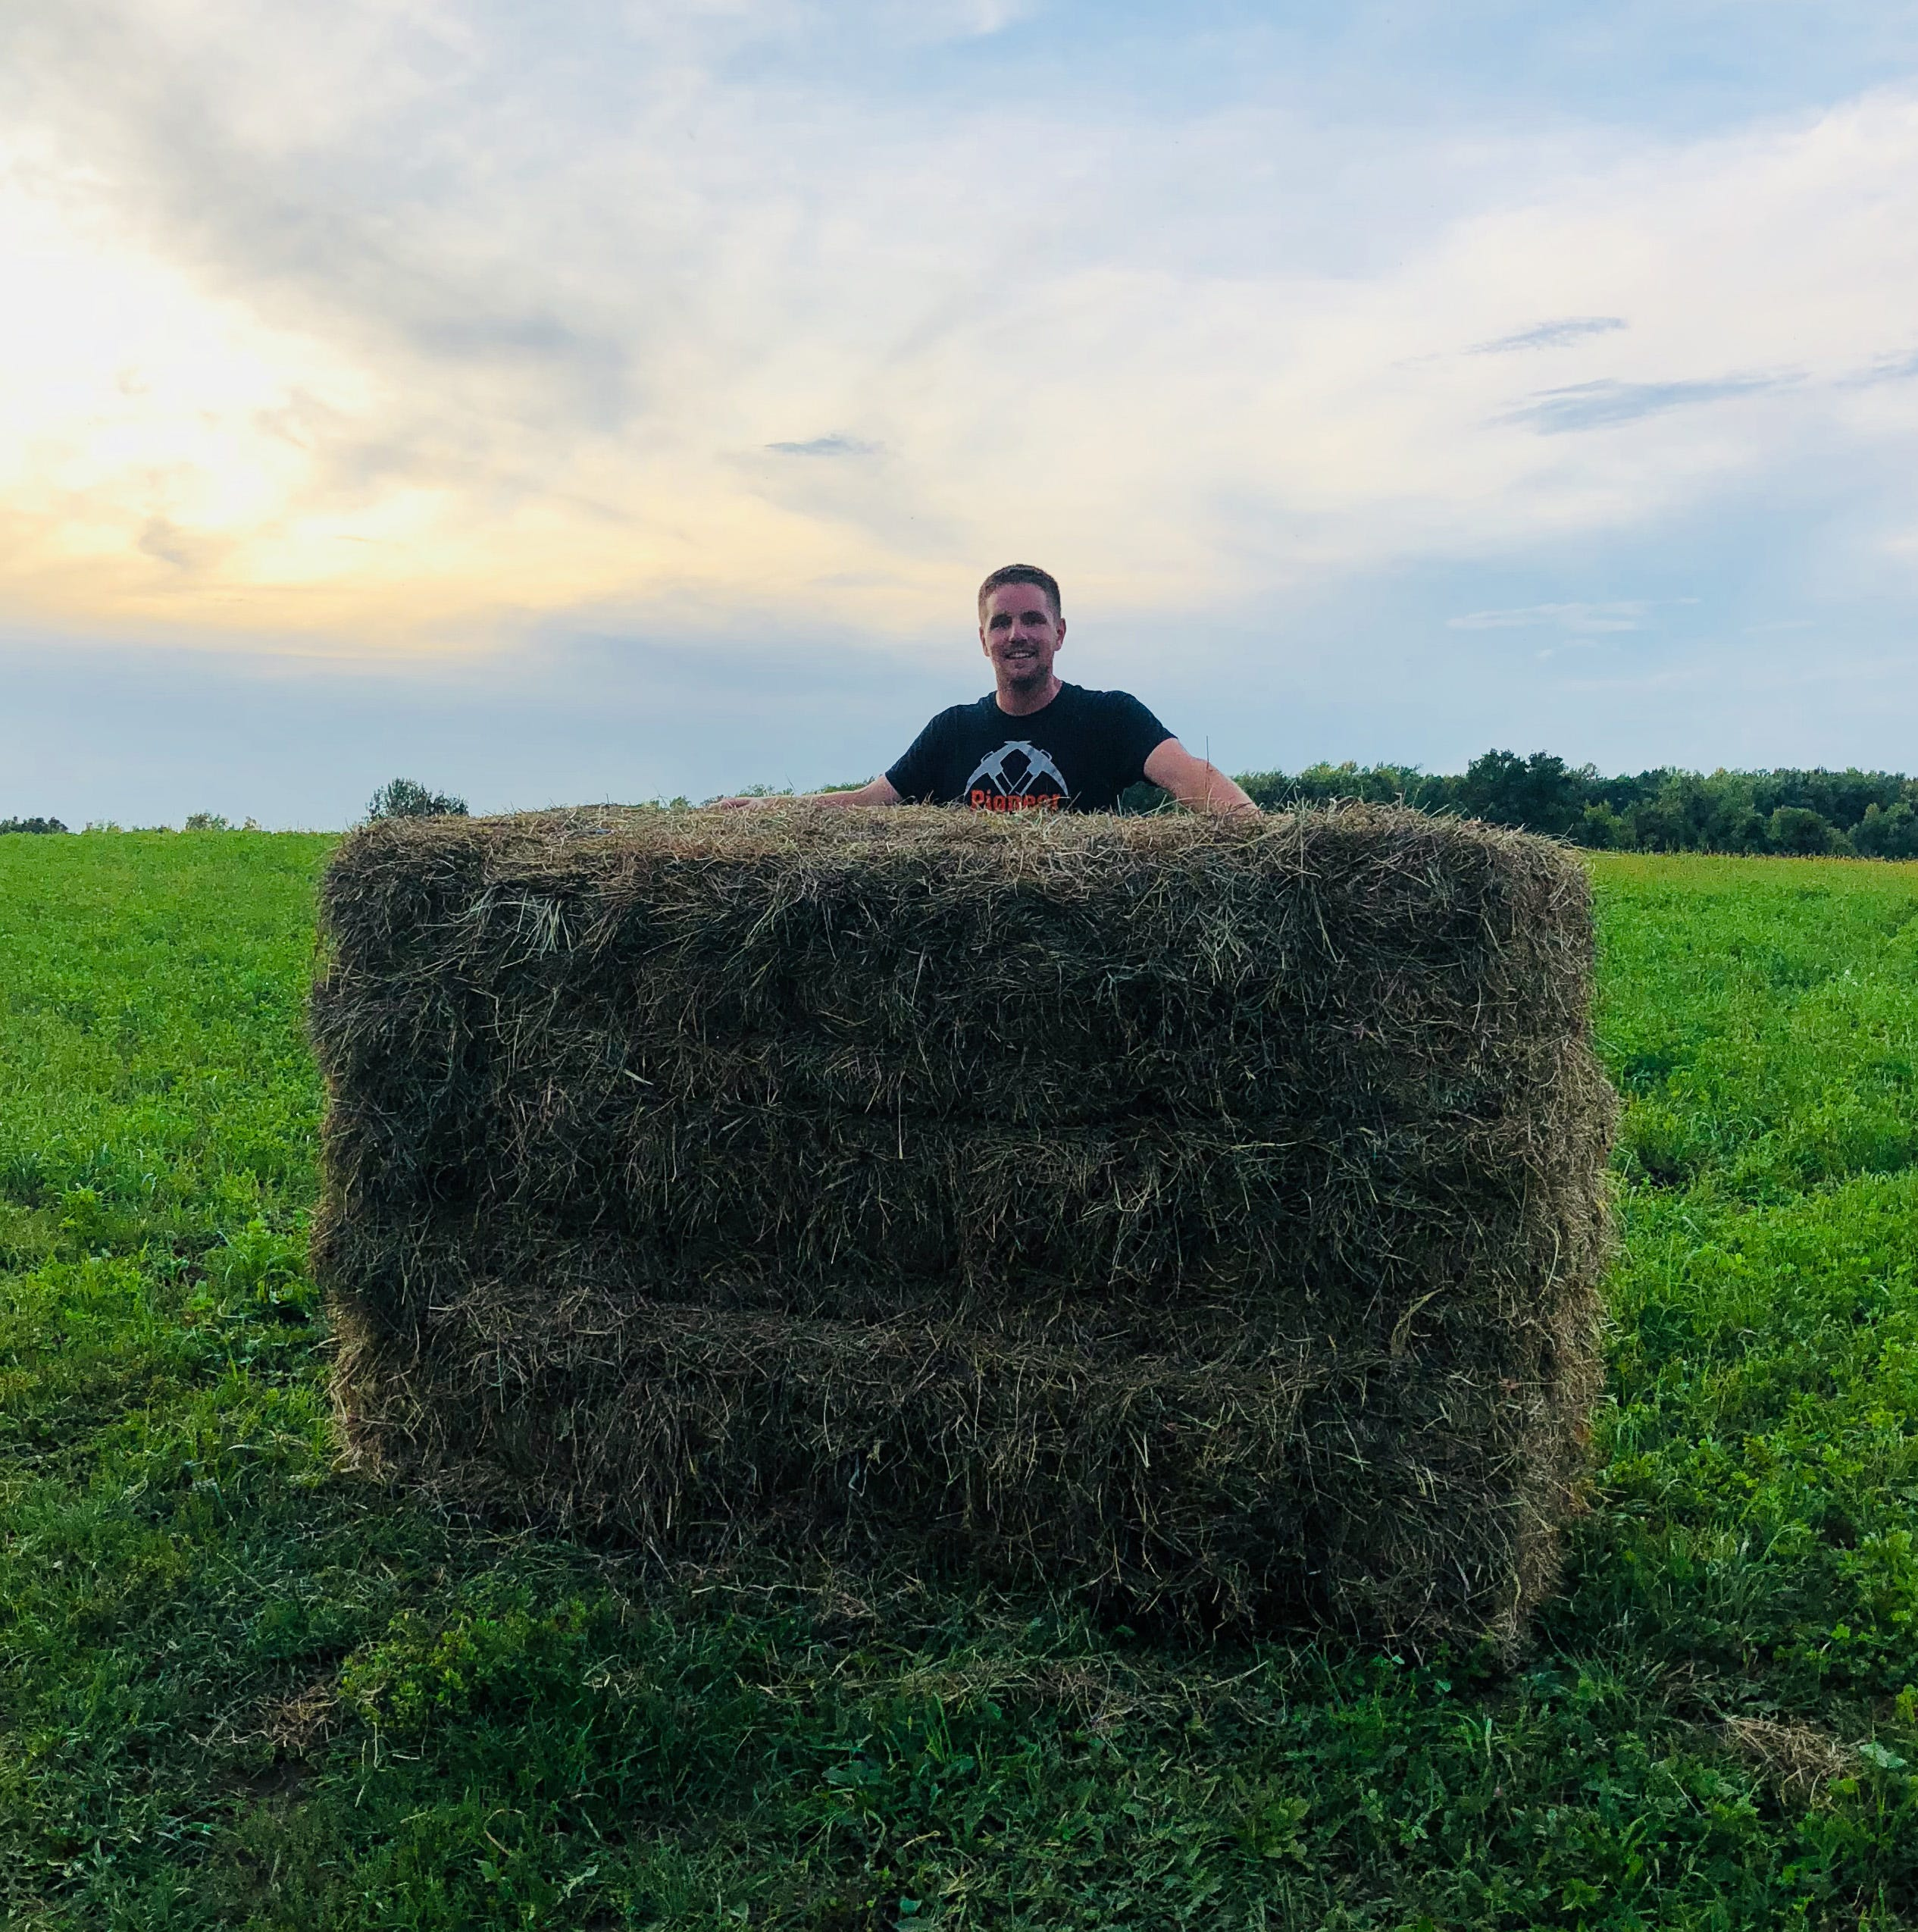 Young farmers finding ways to go against the status quo in ag industry